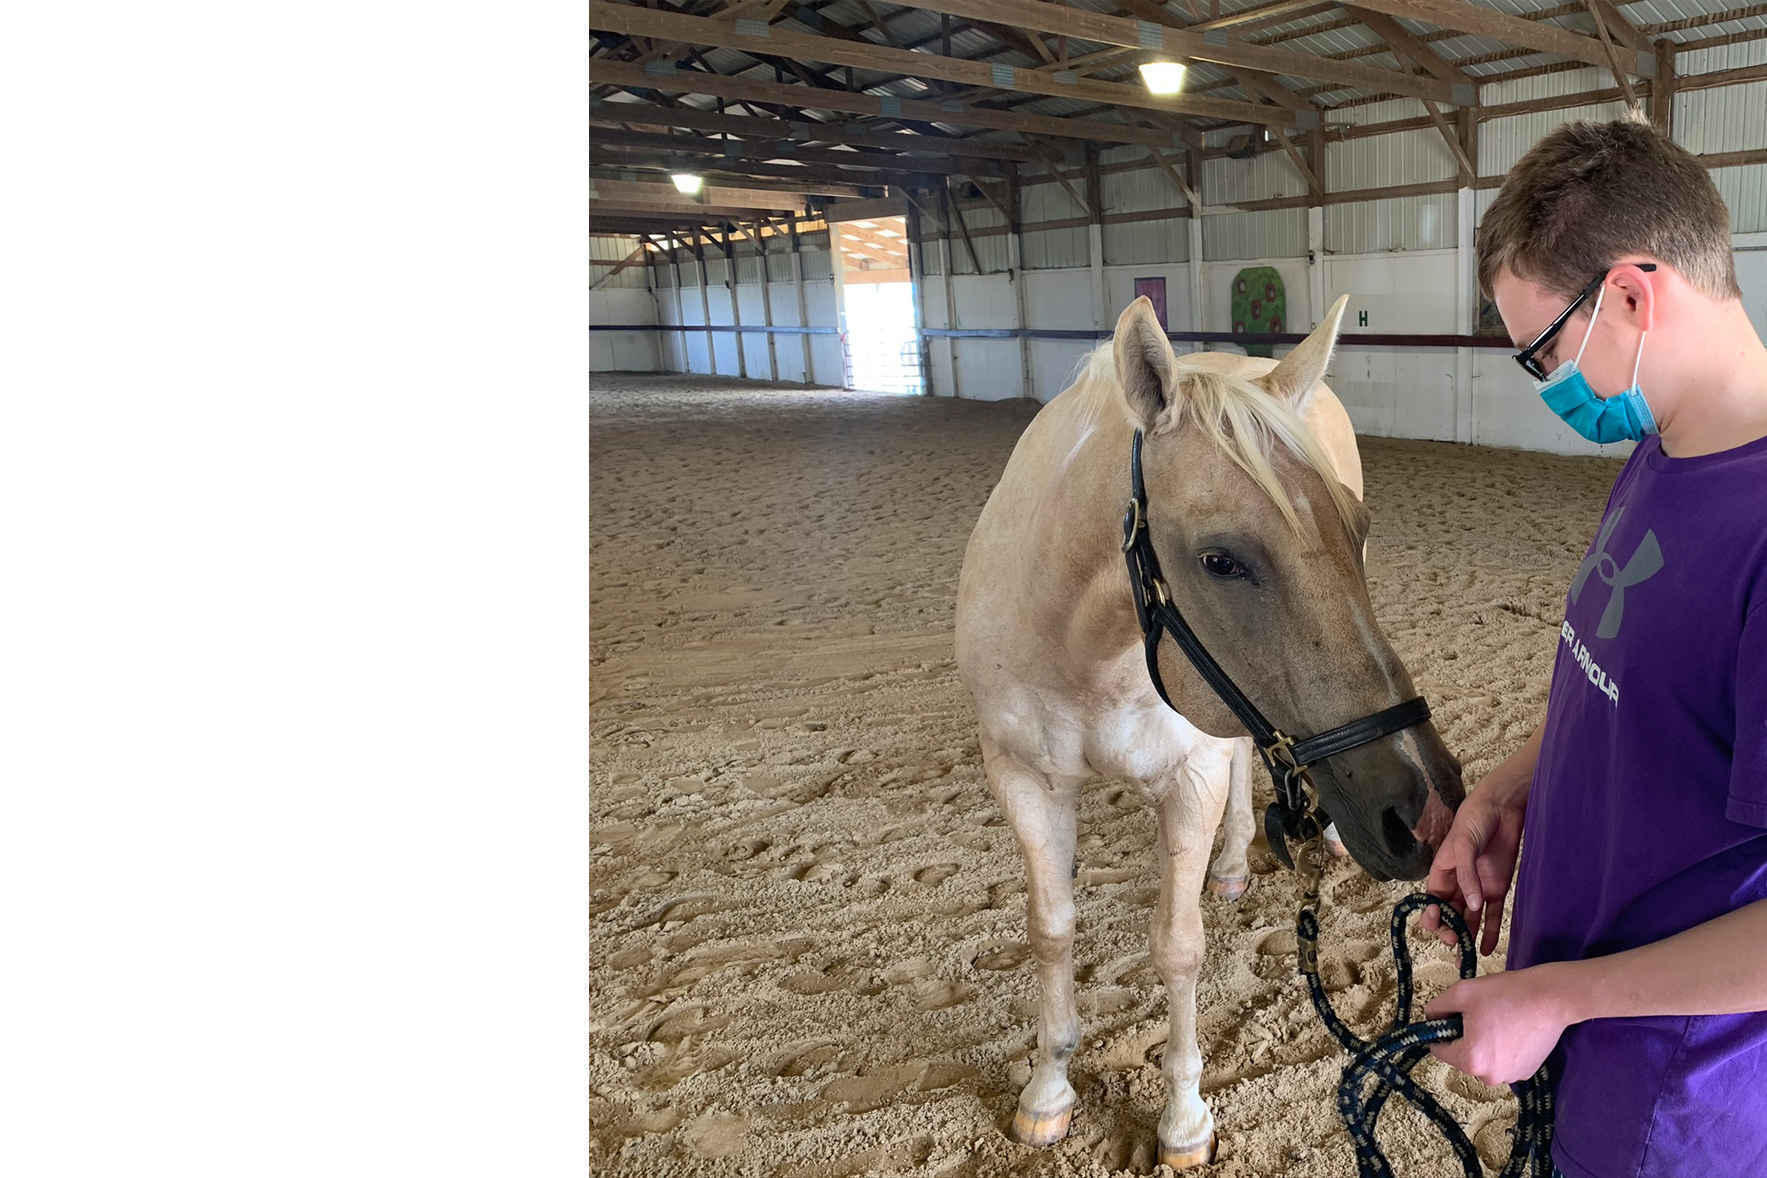 How touching to see student and horse reunite! image